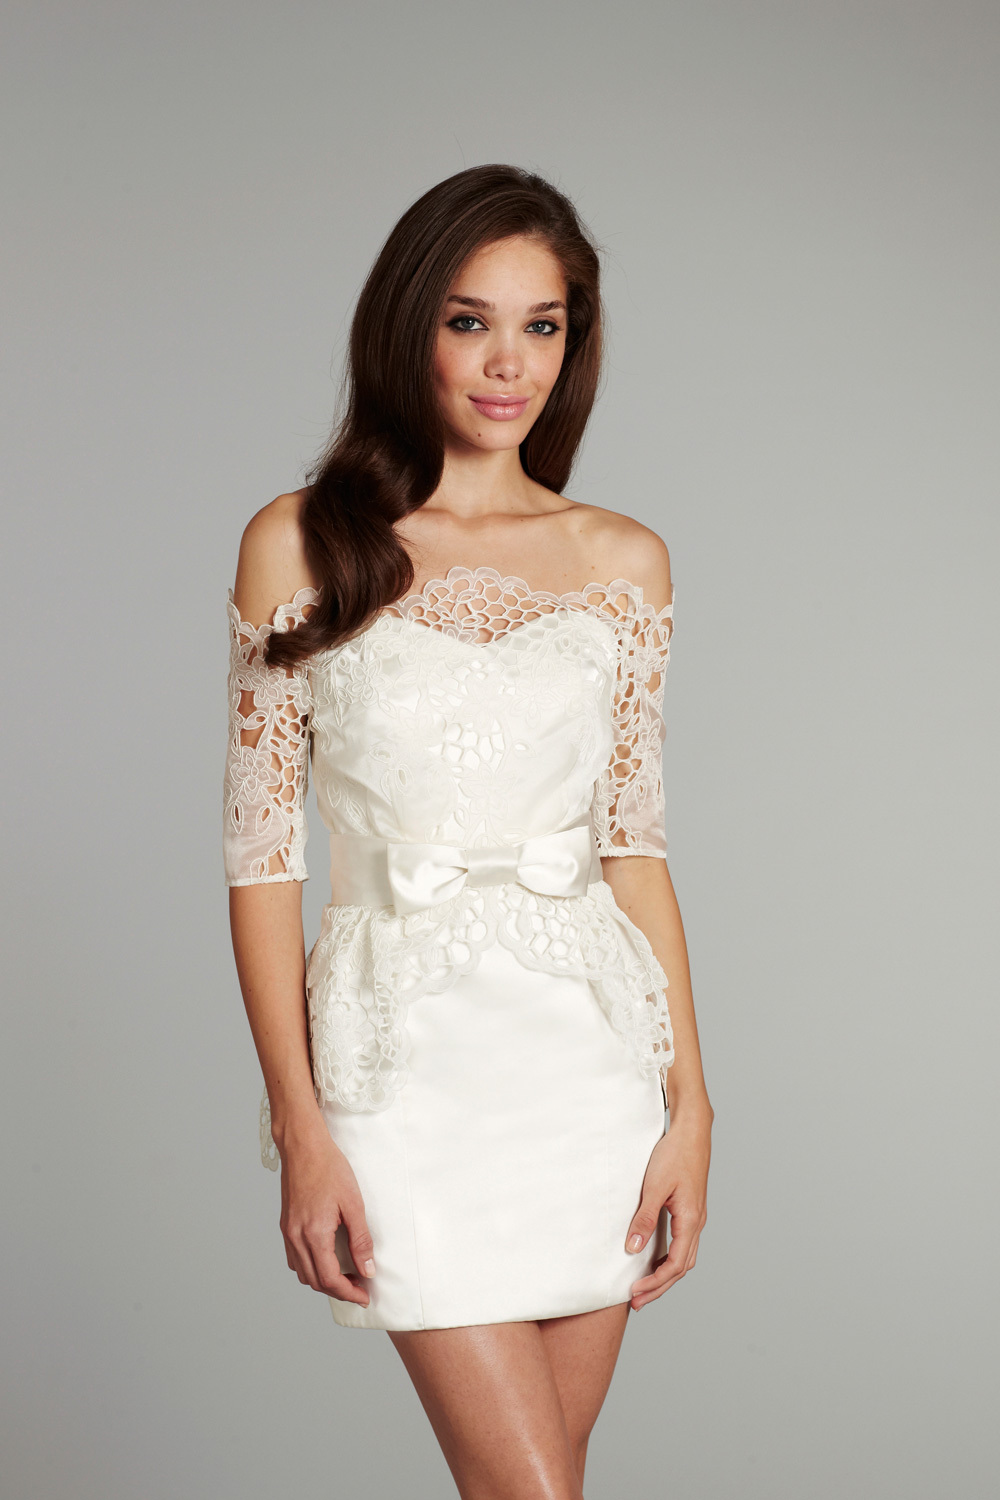 bridal gown wedding dress jlm hayley paige fall 2012 ellie front